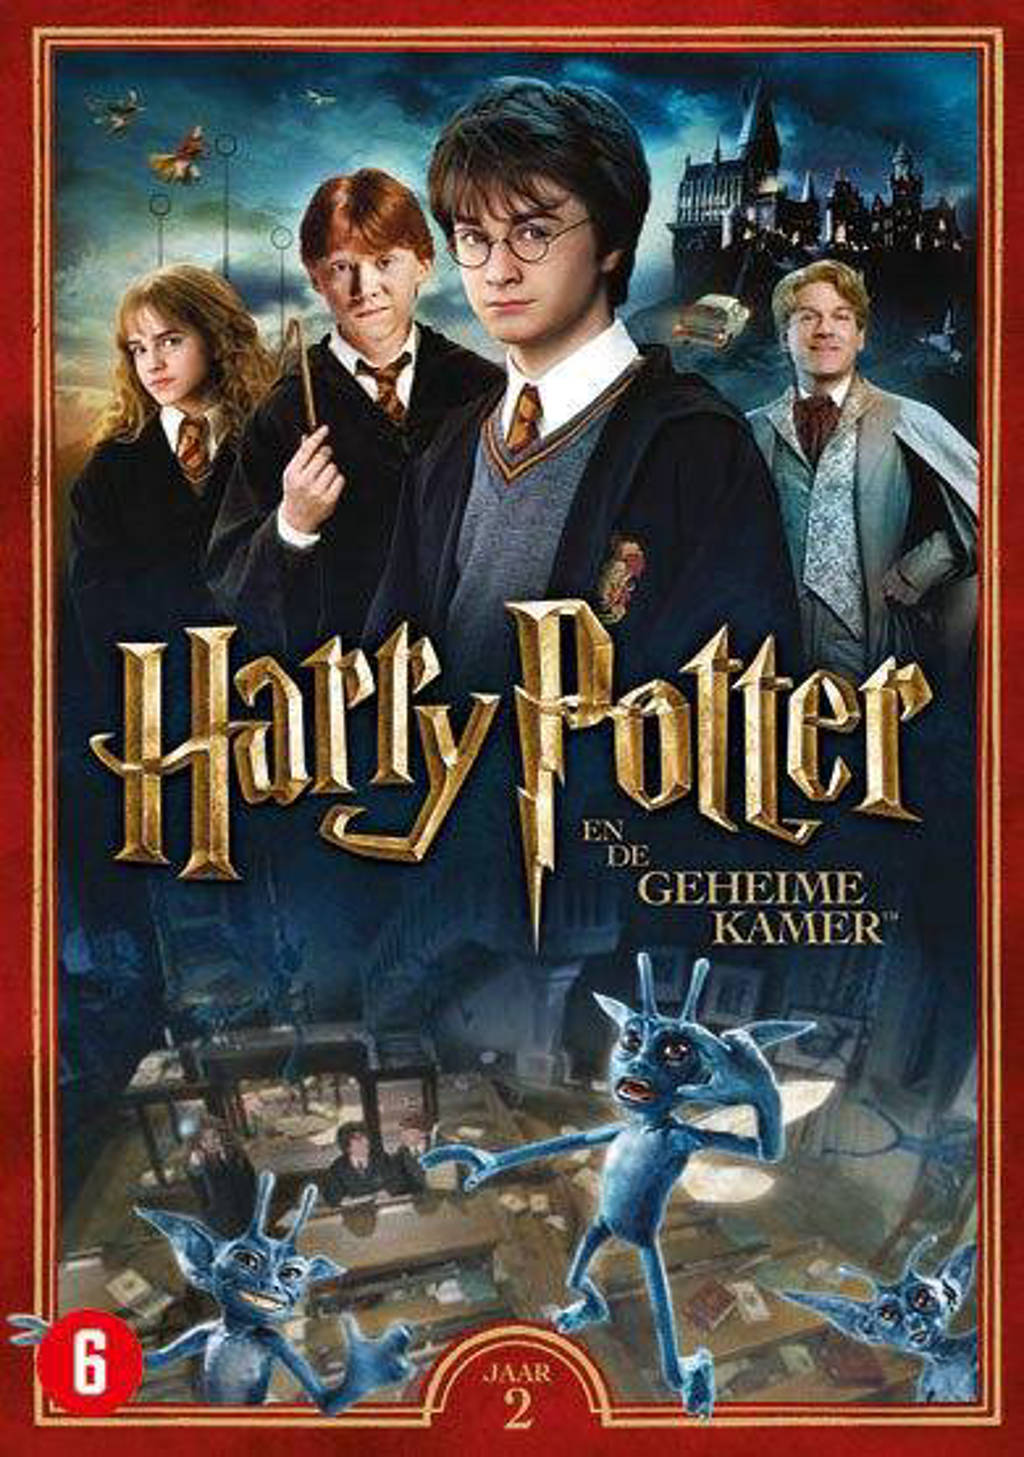 Harry Potter jaar 2 - De geheime kamer (DVD)